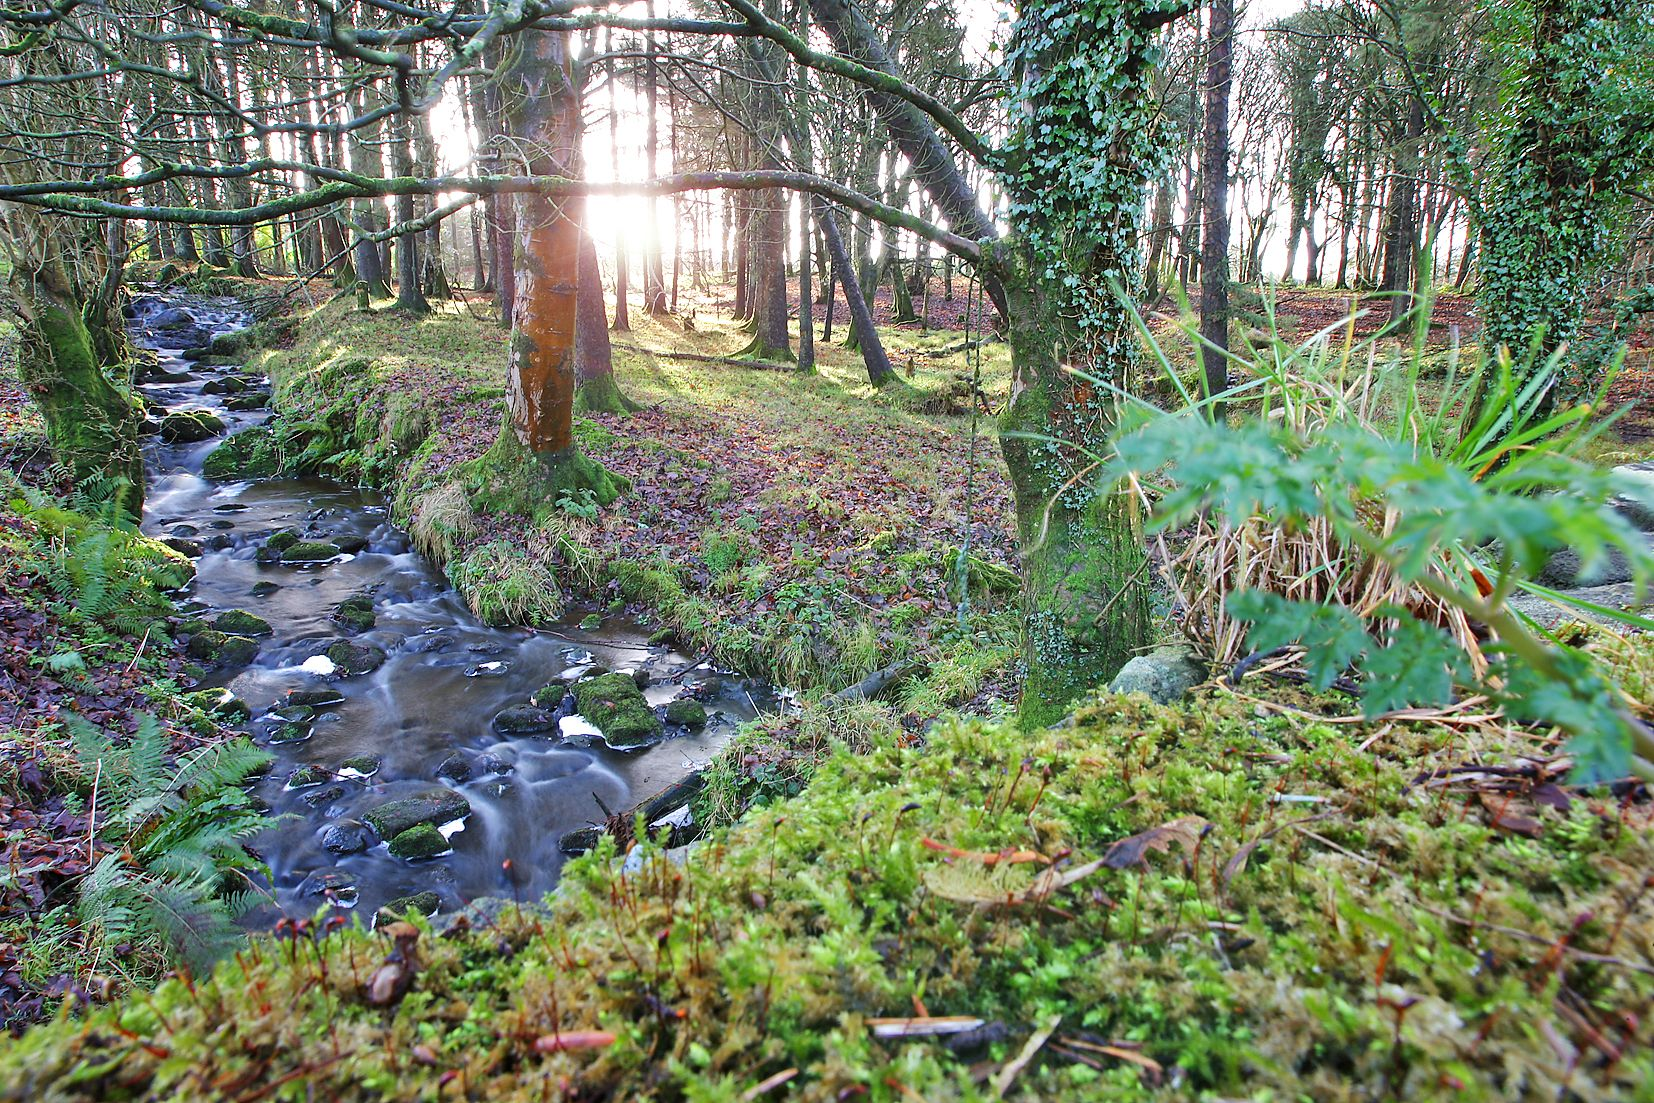 BACK TO THE FUTURE: Restorify has ambitious plans to bring back our forests